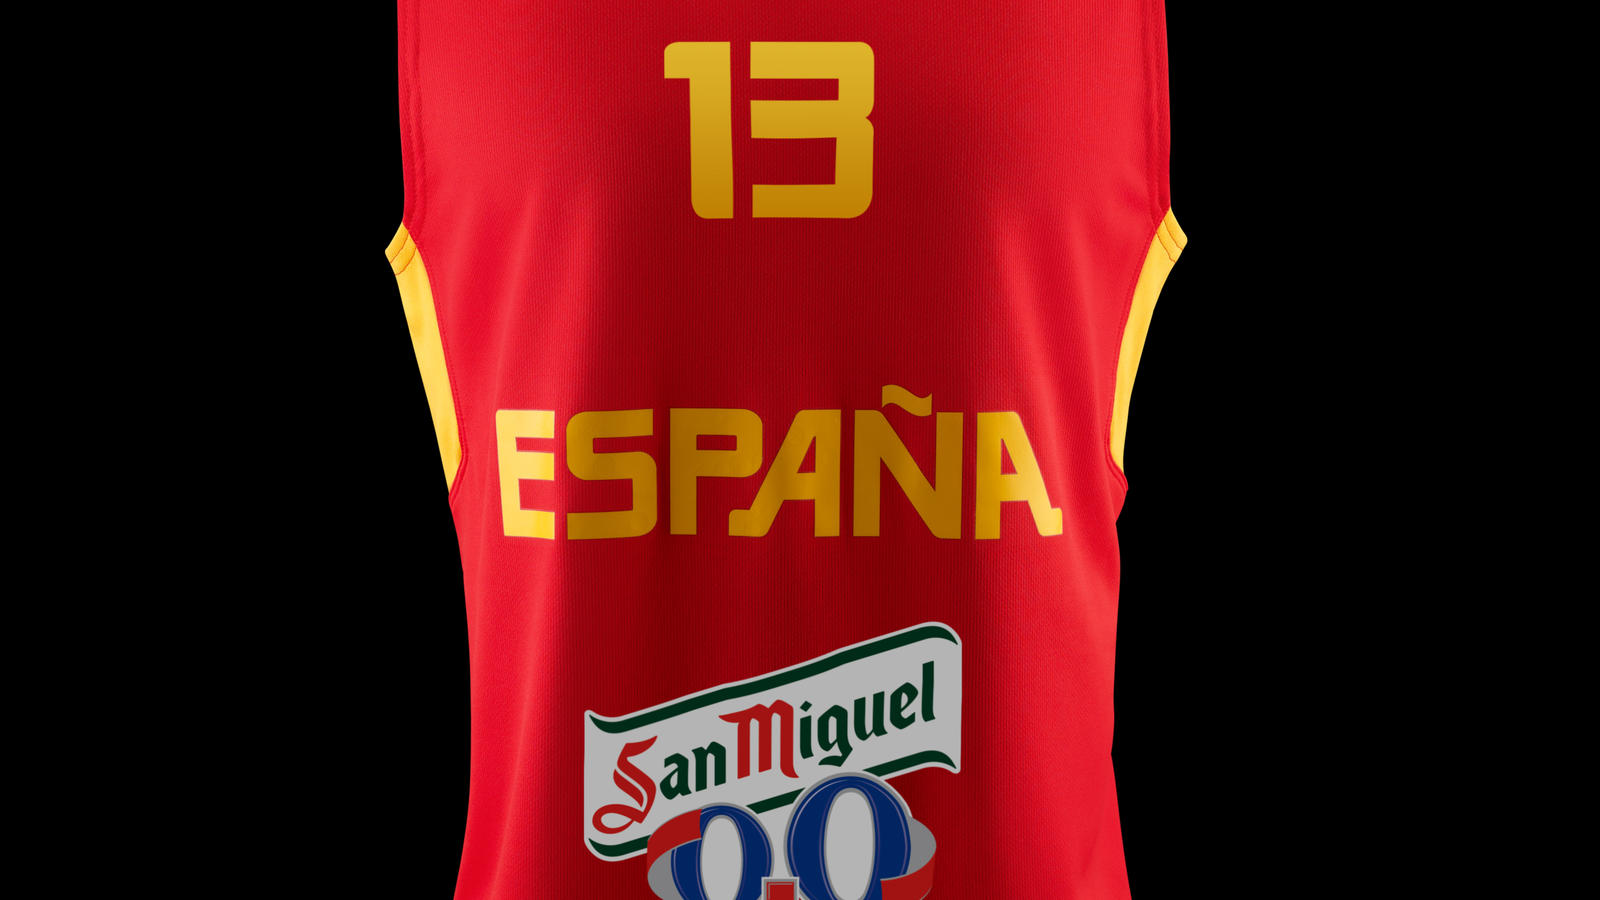 3f7491a2877 Nike proudly unveils the new Spanish national basketball team uniform for  the first time. Inspired by Spanish culture, the kits feature the most ...